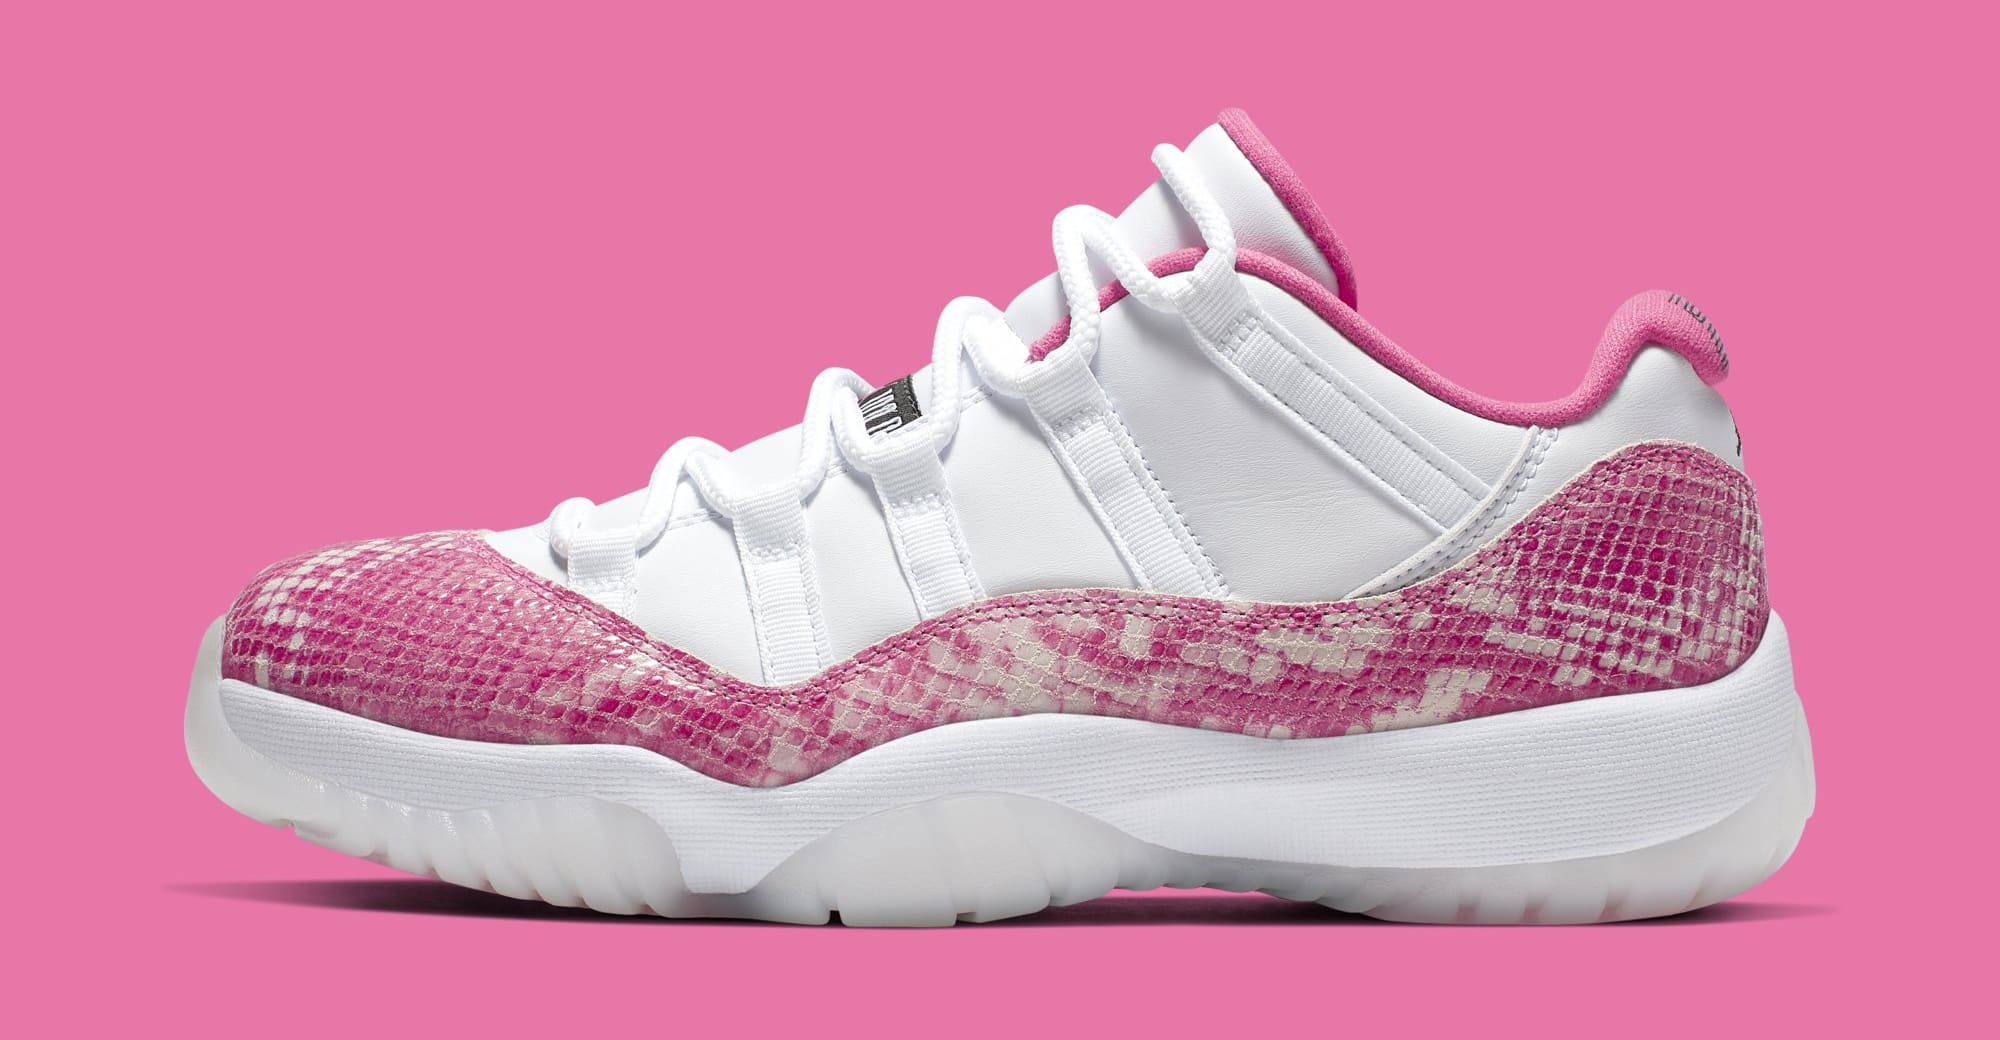 newest 0a413 729d0 Air Jordan 11 Low  Pink Snakeskin  AH7860-106 (Lateral)